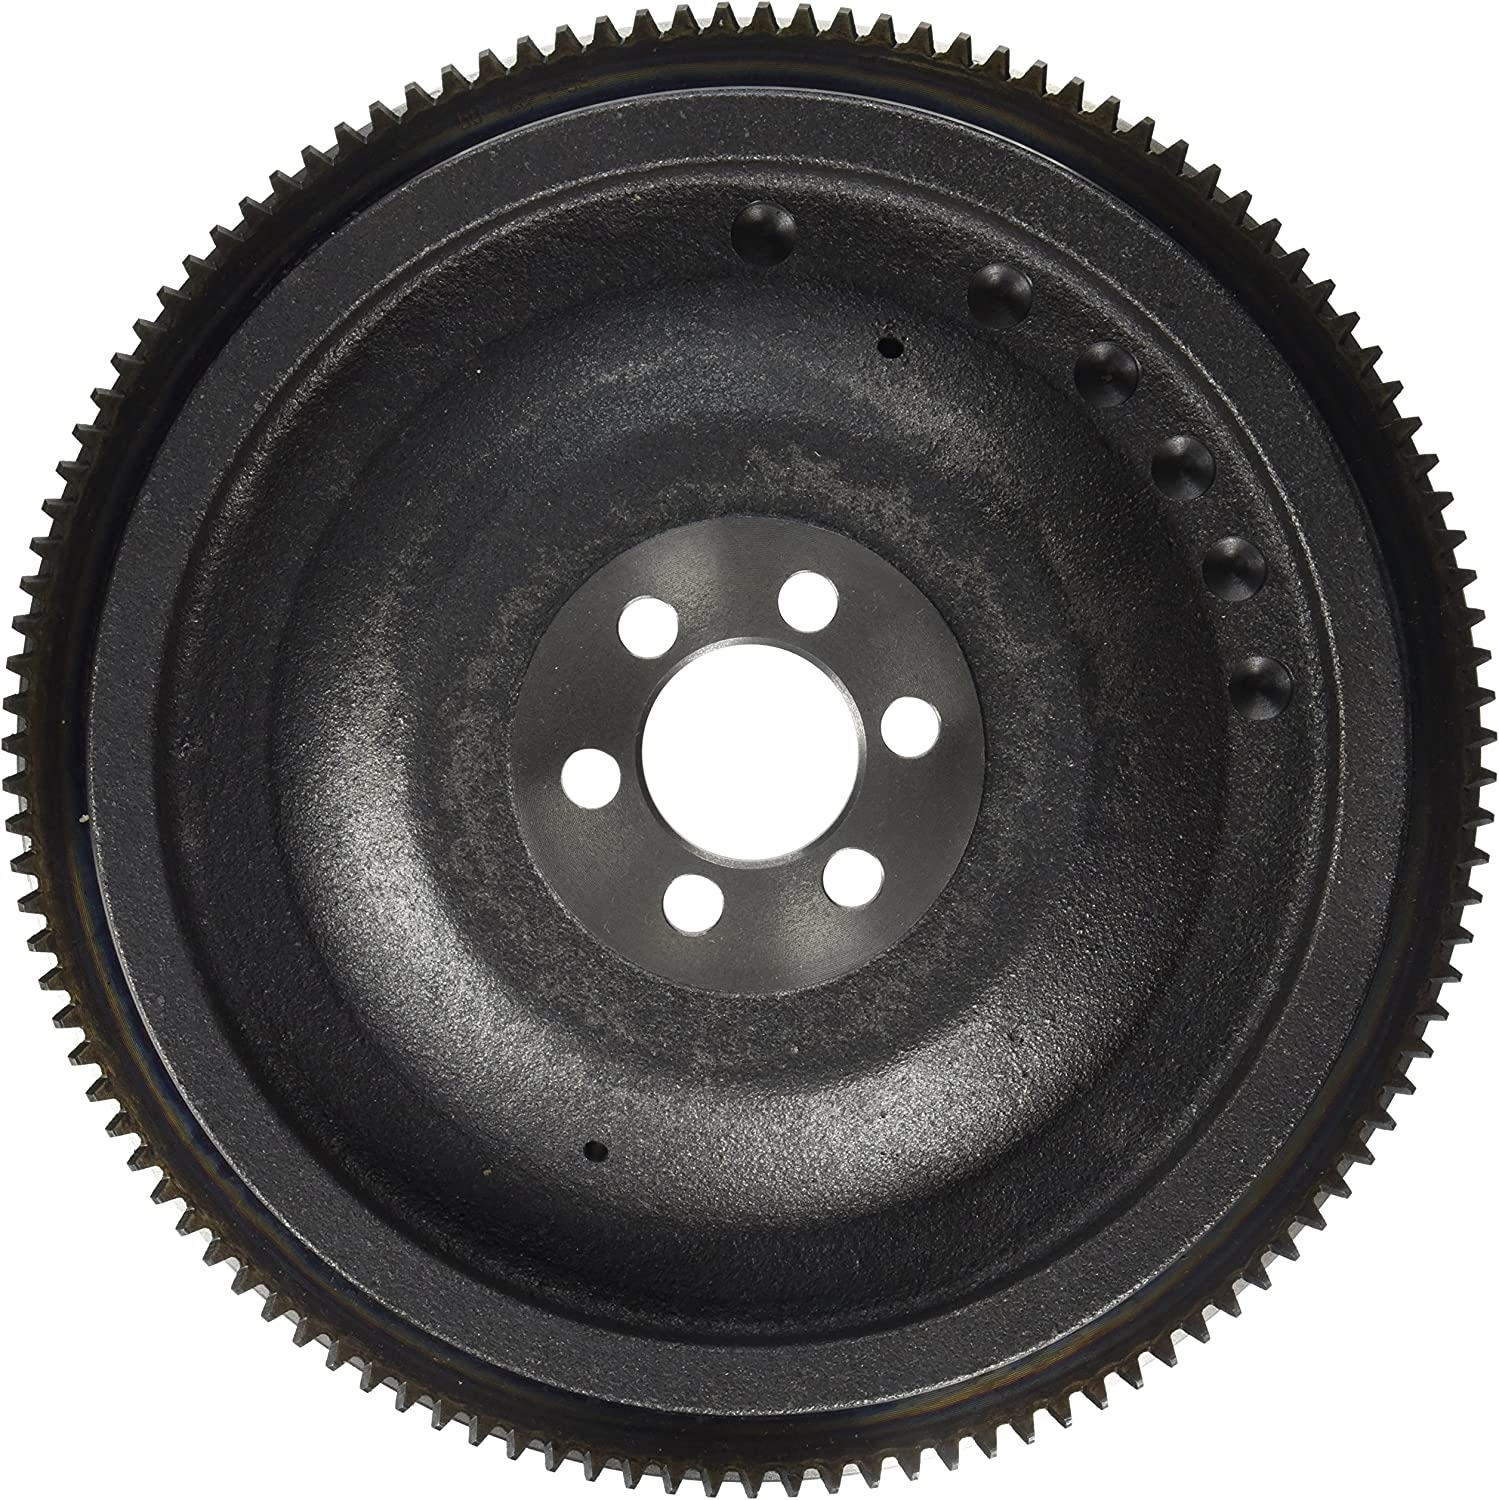 Sachs NFW6915 Clutch Flywheel